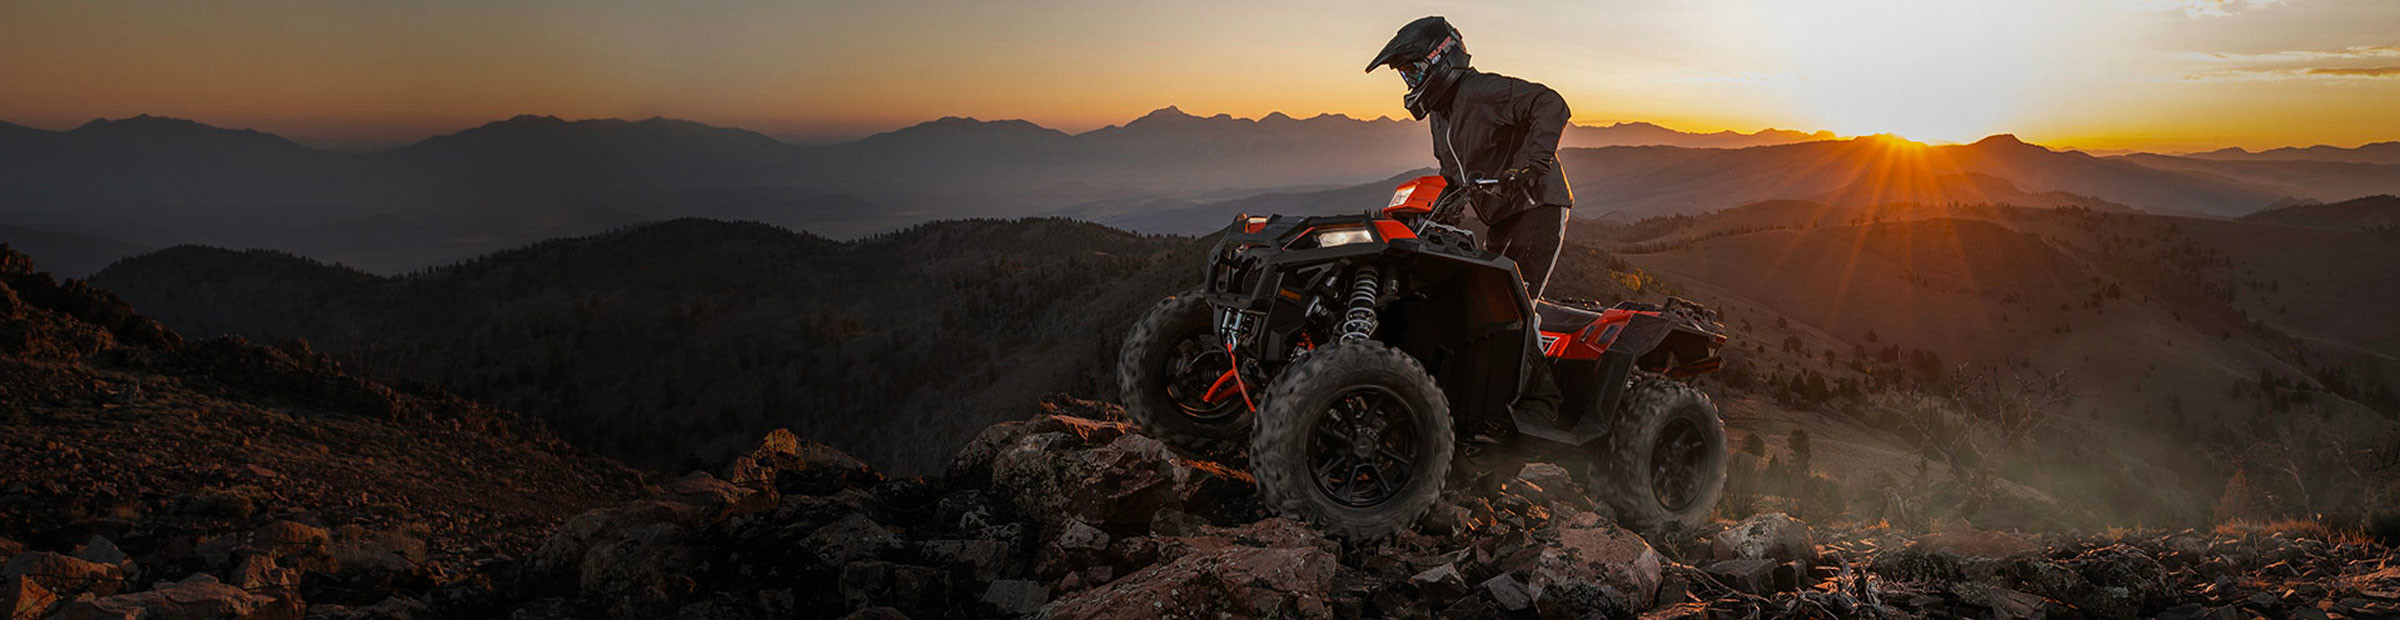 2020 Polaris Sportsman